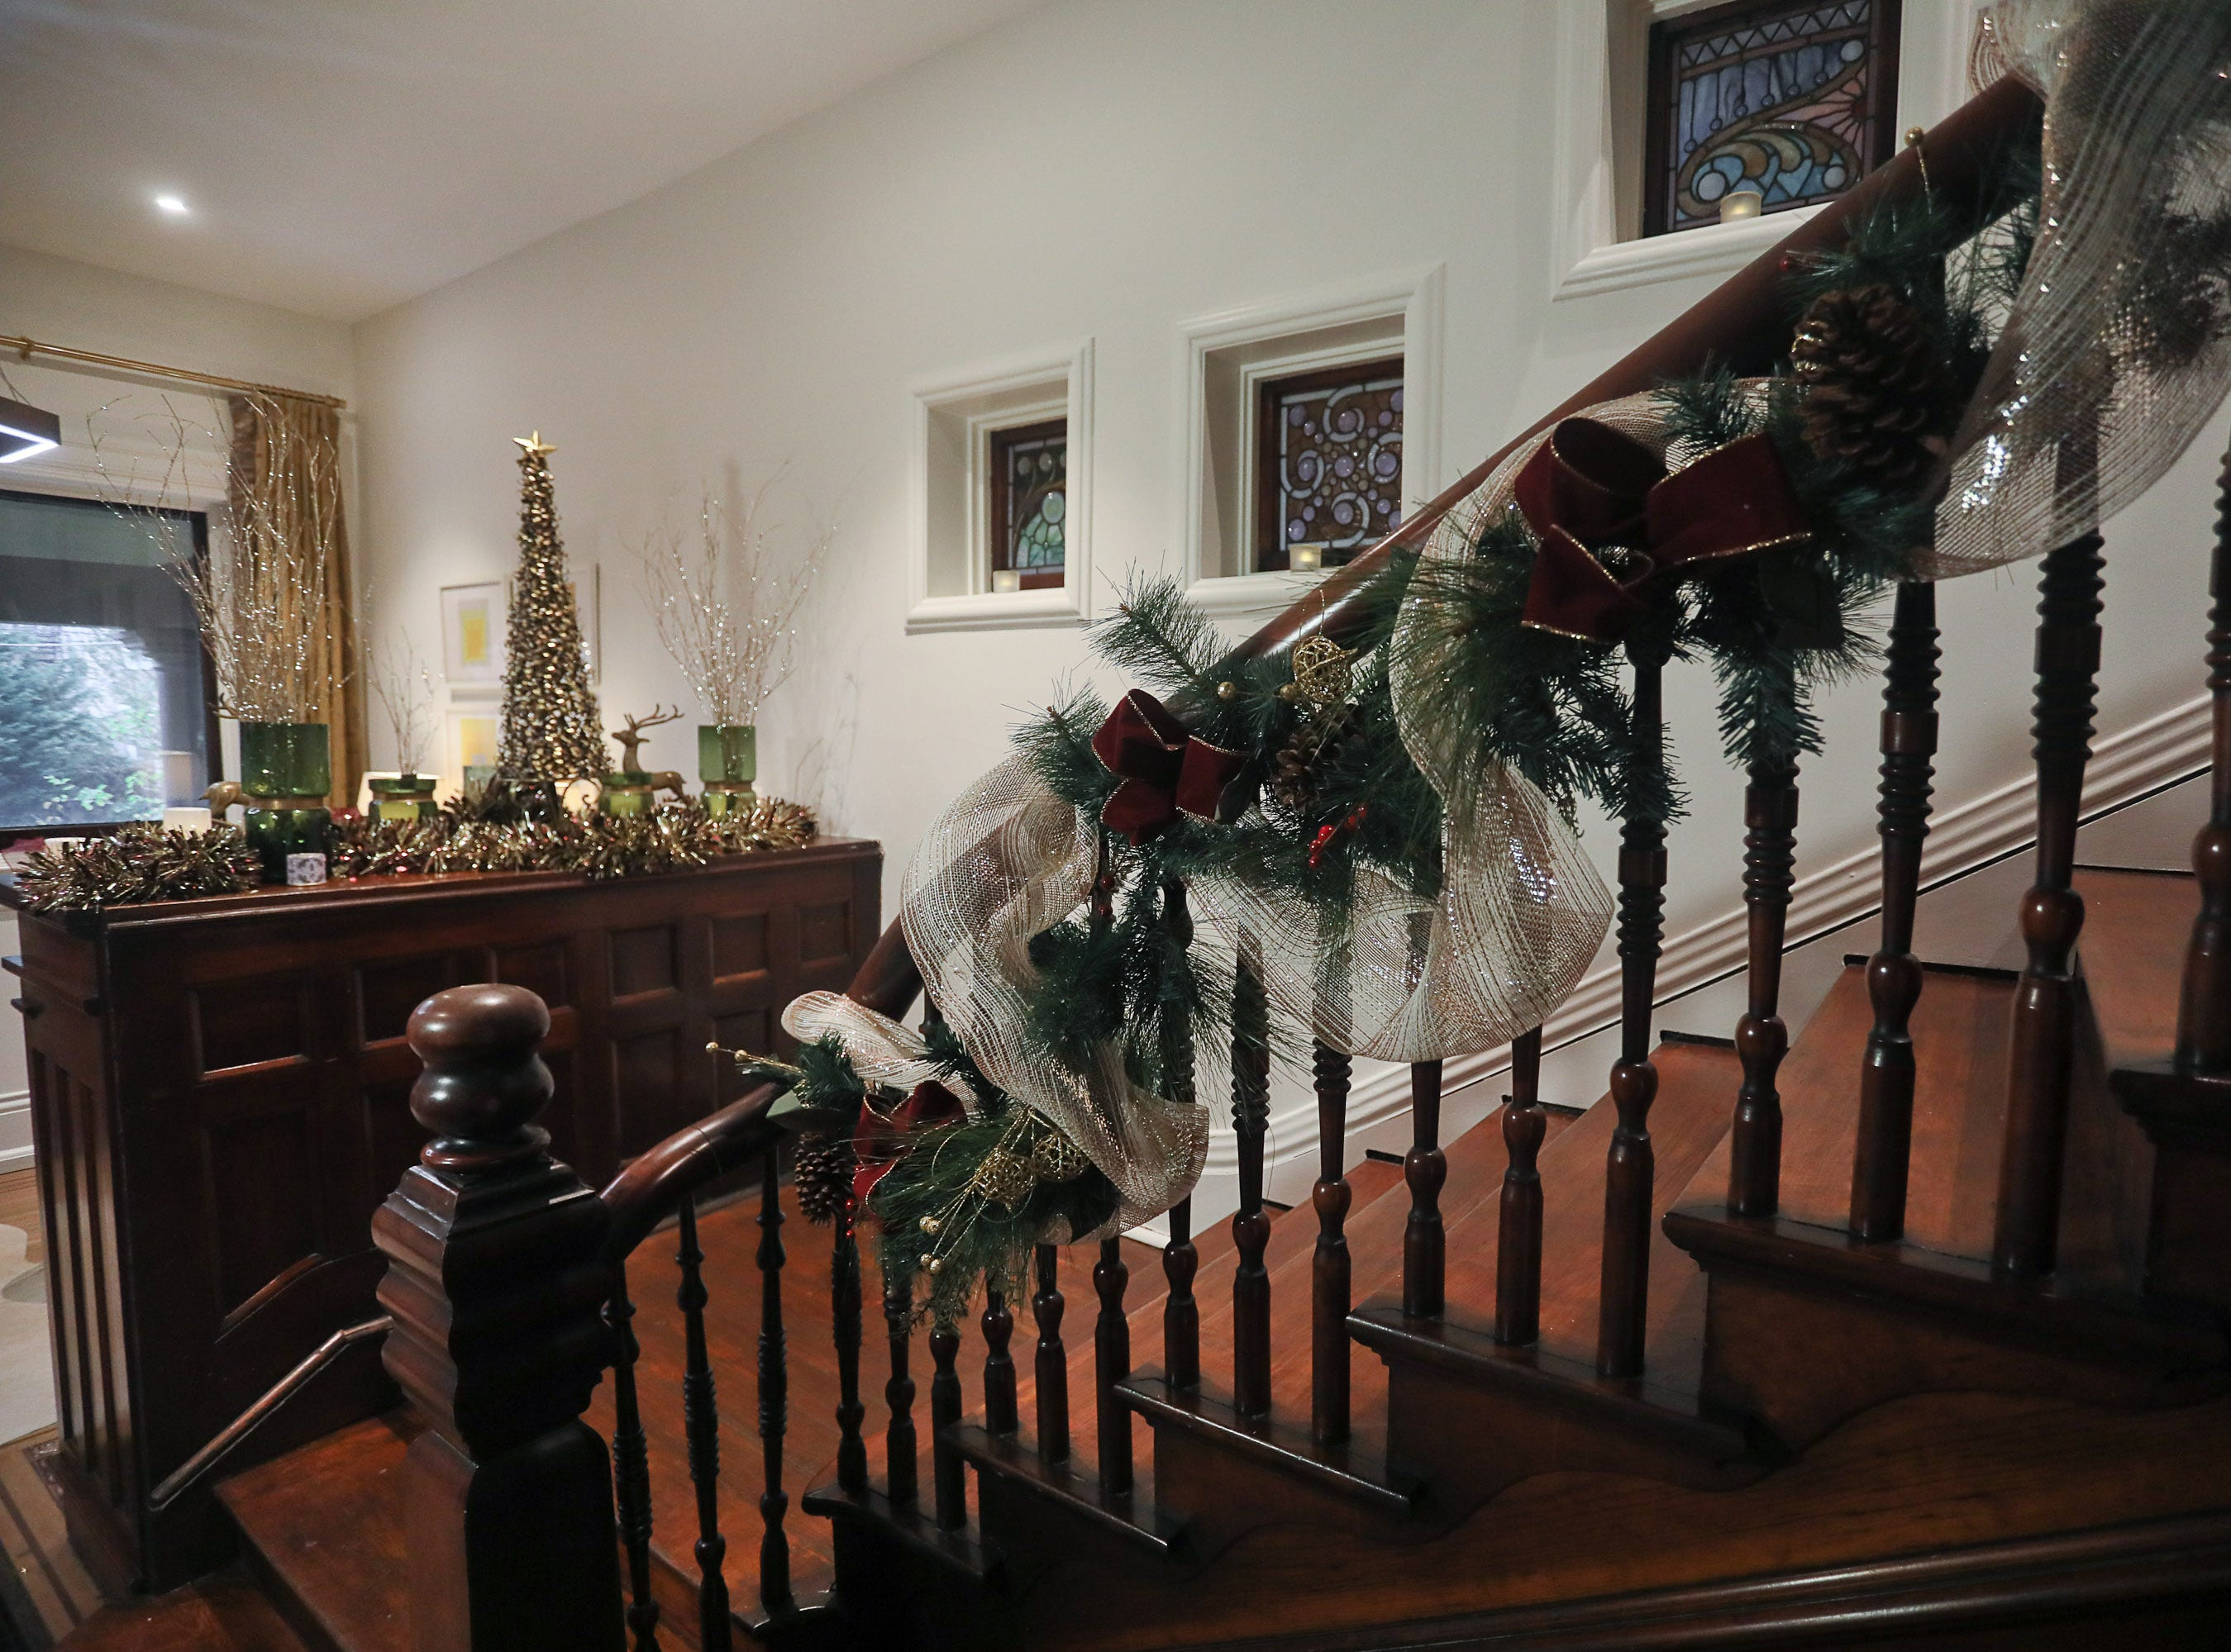 The staircase at the home of Bethany Adams in Louisville, KY. Nov. 13, 2018